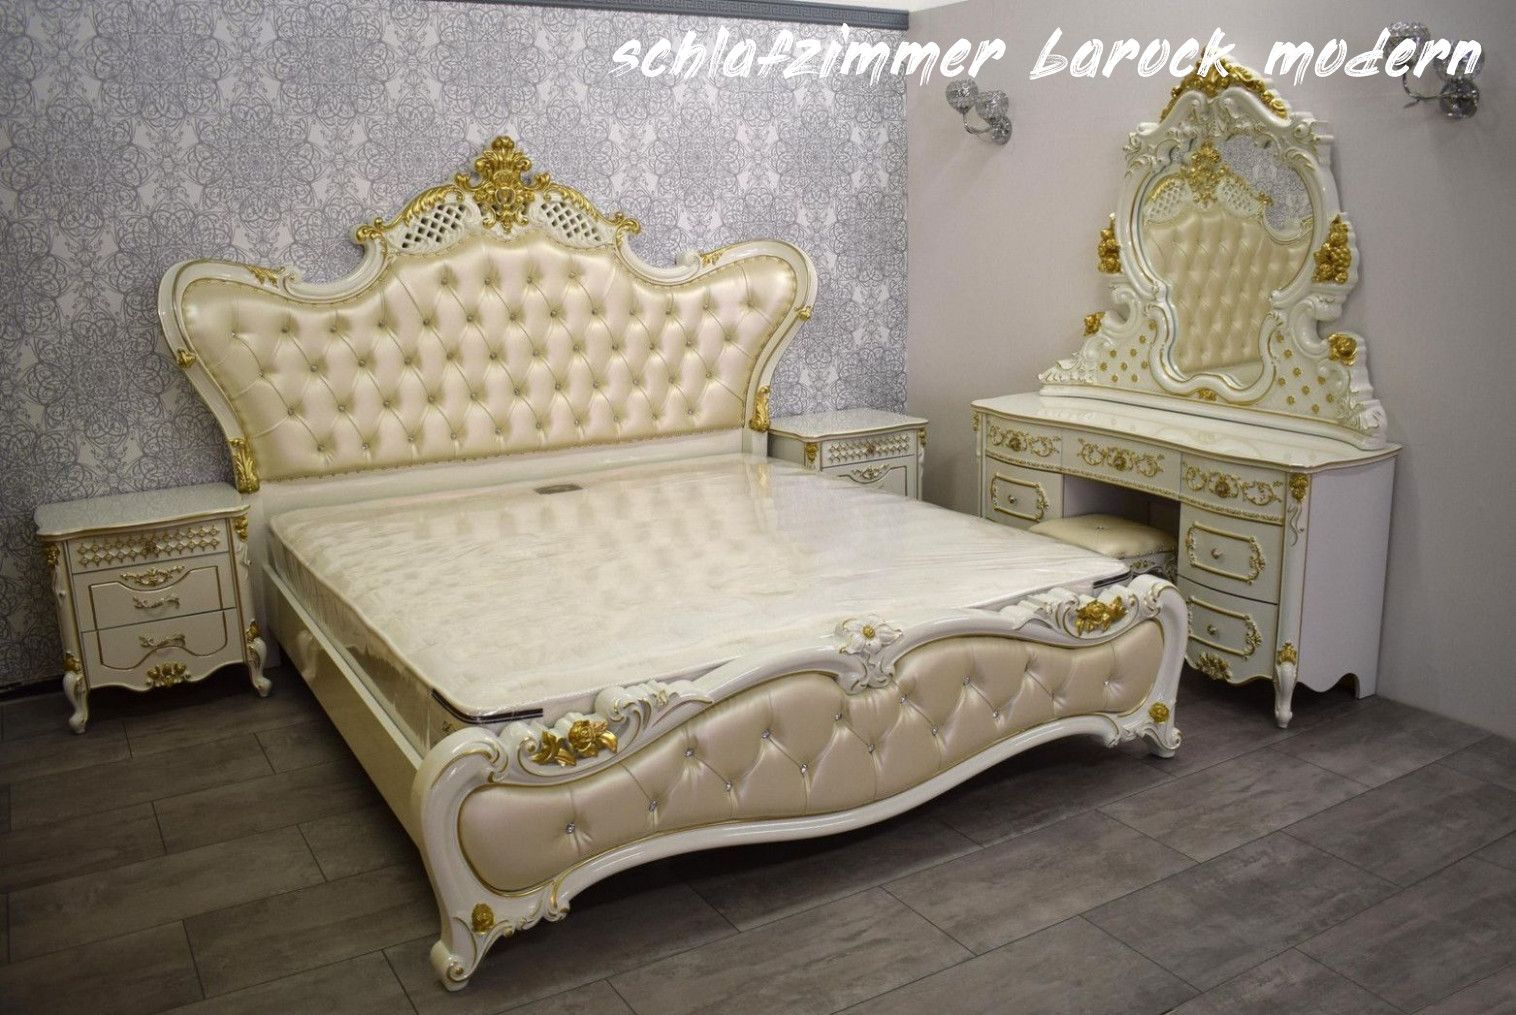 8 Schlafzimmer Barock Modern in 2020 | Home decor, Modern, Chaise lounge